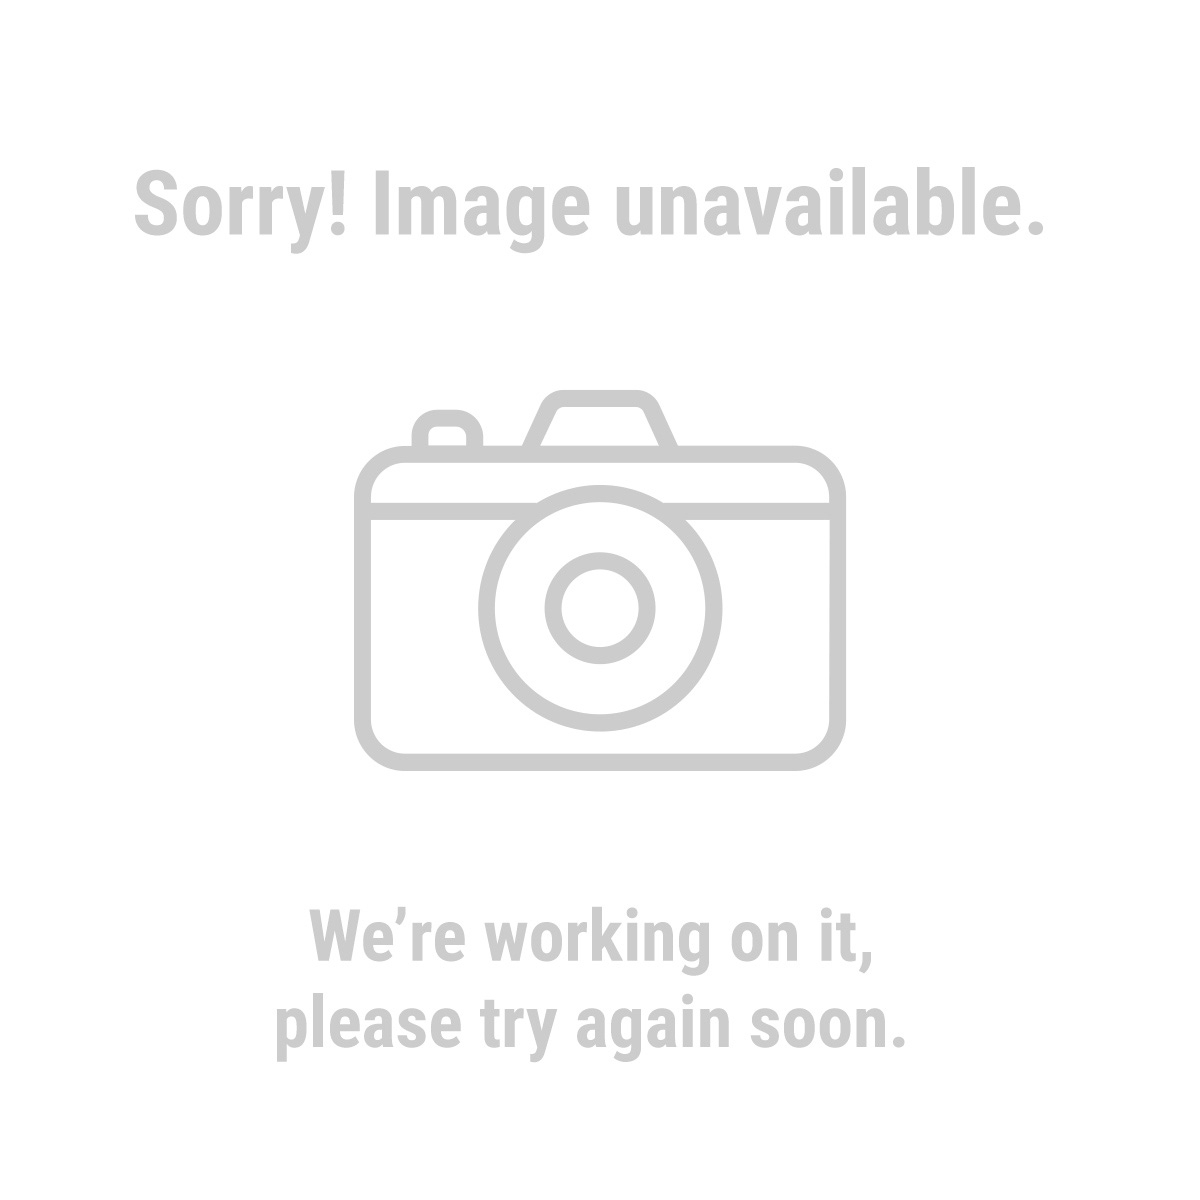 Pittsburgh Automotive 62855 1100 lb. Electric Hoist with Remote Control